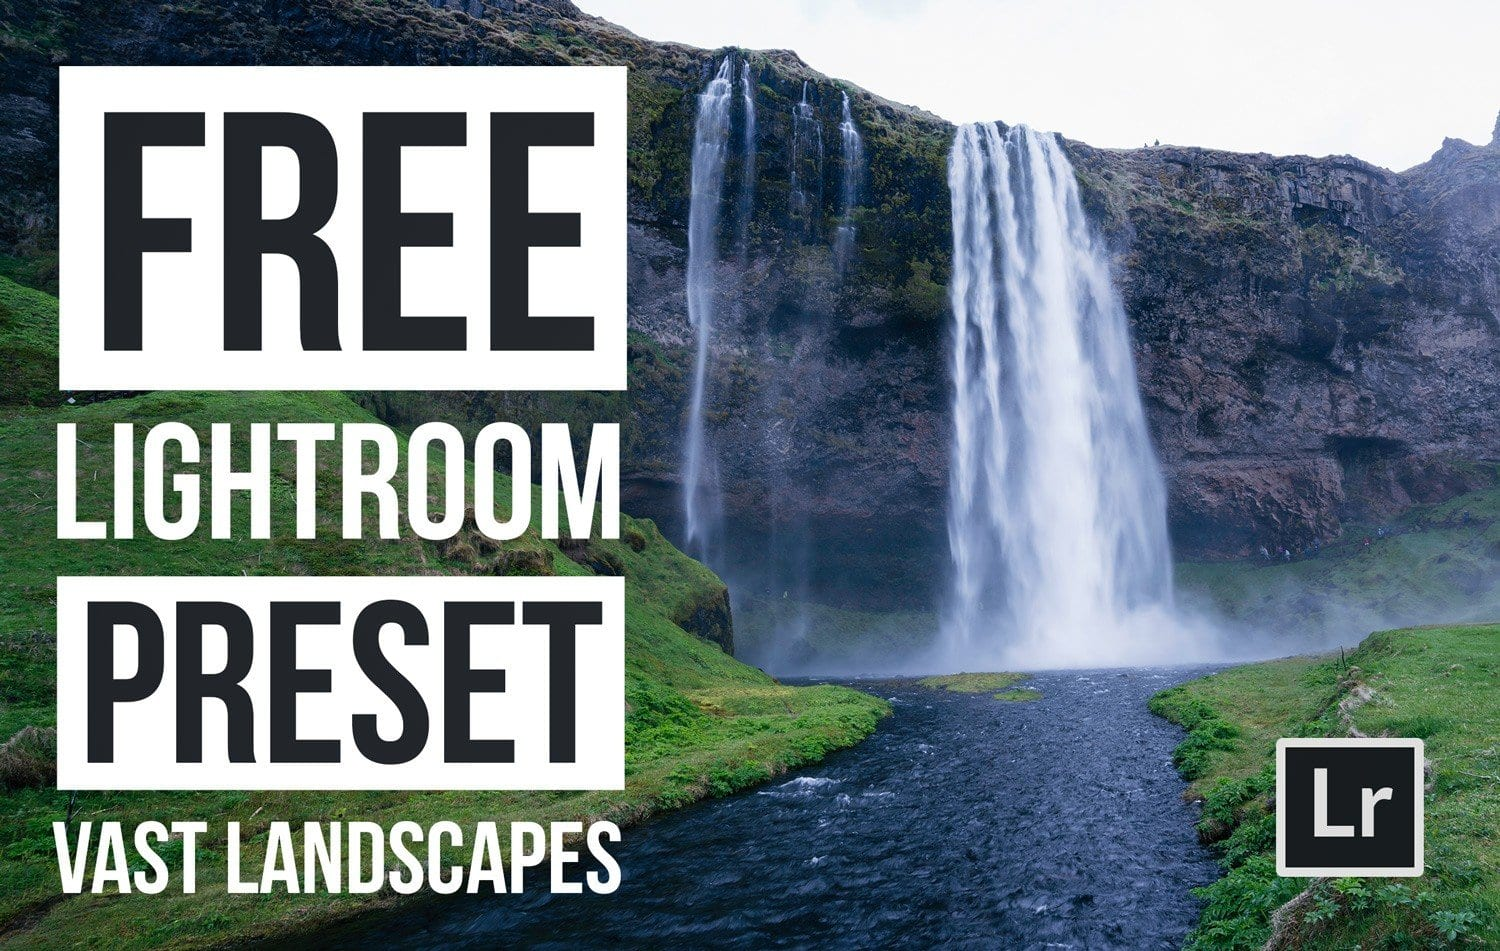 Free-Lightroom-Preset-Vast-Landscapes-Cover-Presetpro.com